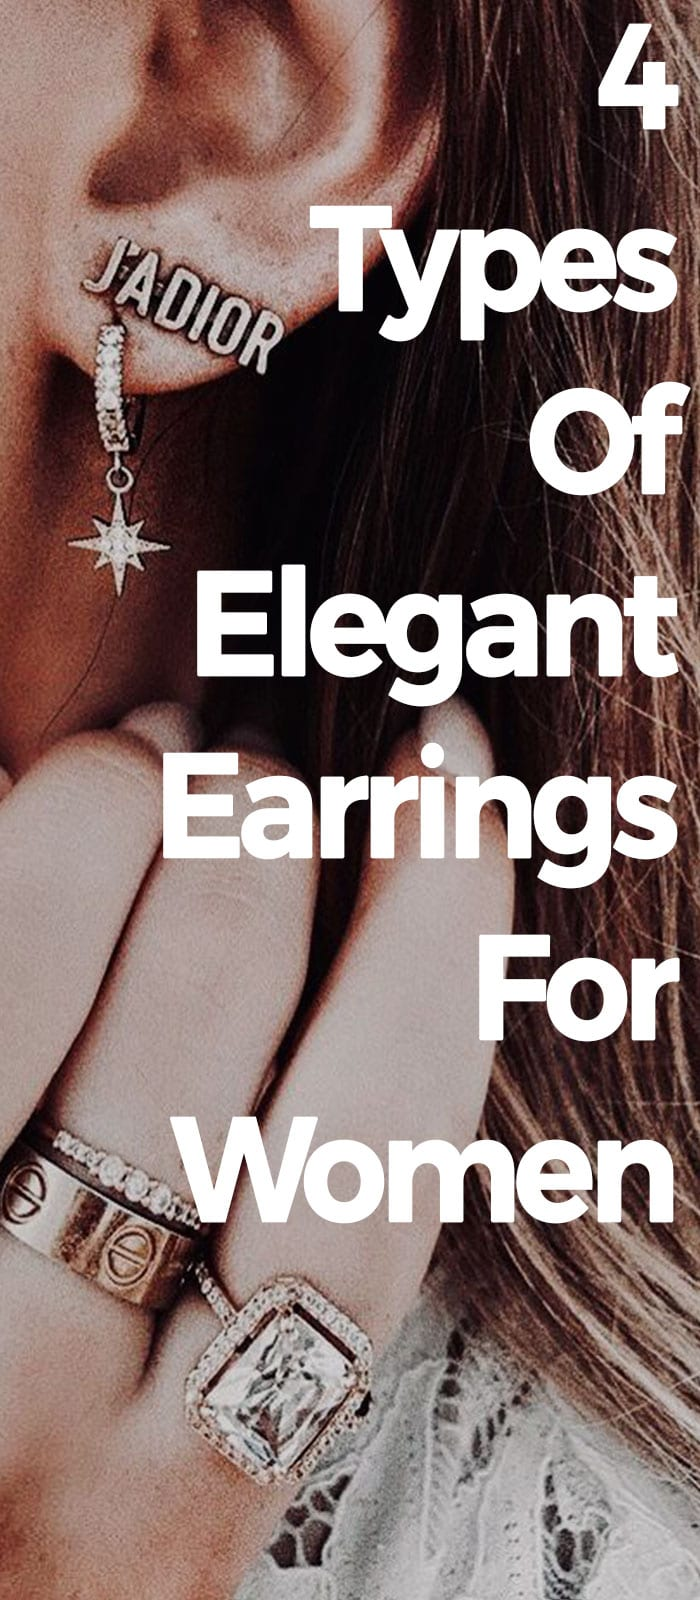 4 Types Of Elegant Earrings For Women